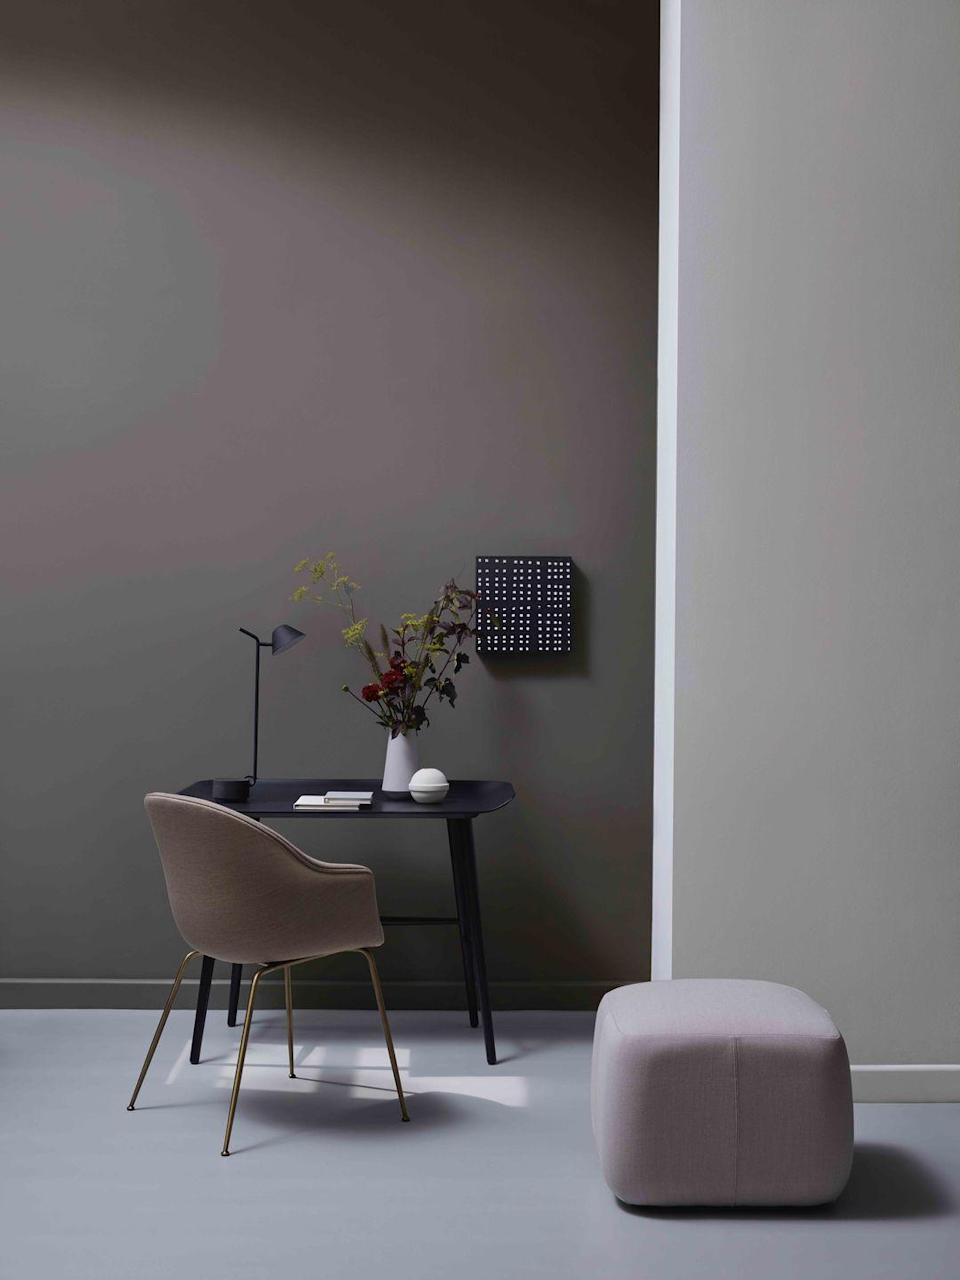 "<p>Choose greys with delicate undertones of mauve for a home office that you'll actually enjoy spending time in. Try two shades in the same colour family to create depth – '<a href=""https://www.crownpaints.co.uk/products/elle-decoration-by-crown/obsidian---flat-matt/sculpture-no.-147/18053"" rel=""nofollow noopener"" target=""_blank"" data-ylk=""slk:Sculpture"" class=""link rapid-noclick-resp"">Sculpture</a>' is shown here with the darker '<a href=""https://www.crownpaints.co.uk/products/elle-decoration-by-crown/obsidian---flat-matt/rock-solid-no.-173/18054"" rel=""nofollow noopener"" target=""_blank"" data-ylk=""slk:Rock Solid"" class=""link rapid-noclick-resp"">Rock Solid</a>'. Subtle colour blocking like this is an ideal way to section off areas within an open-plan home.</p>"